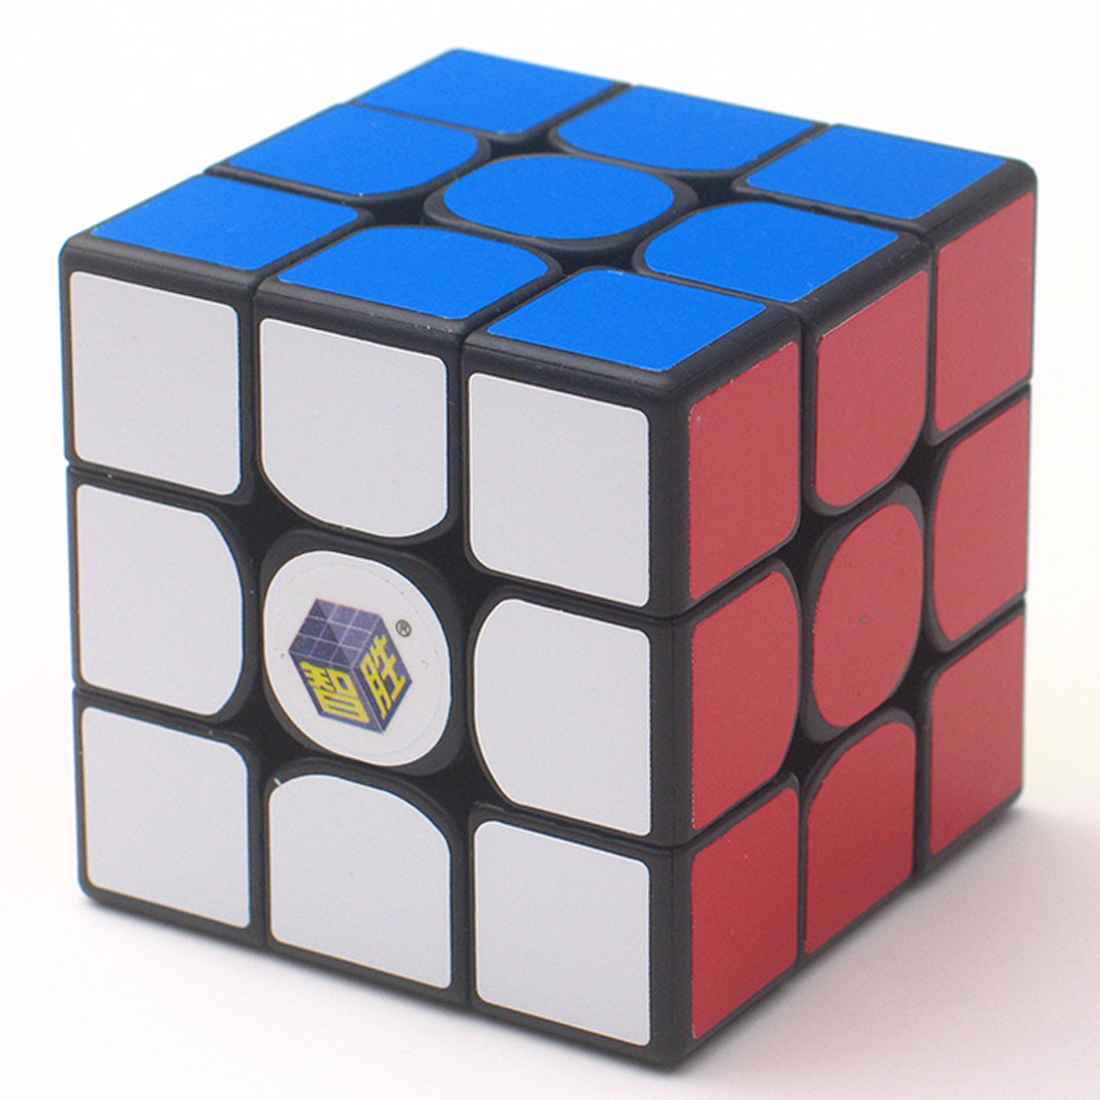 Yuxin Peu de Magie 3x3x3 Magique Cube Magic Speed Cube pour Difficile